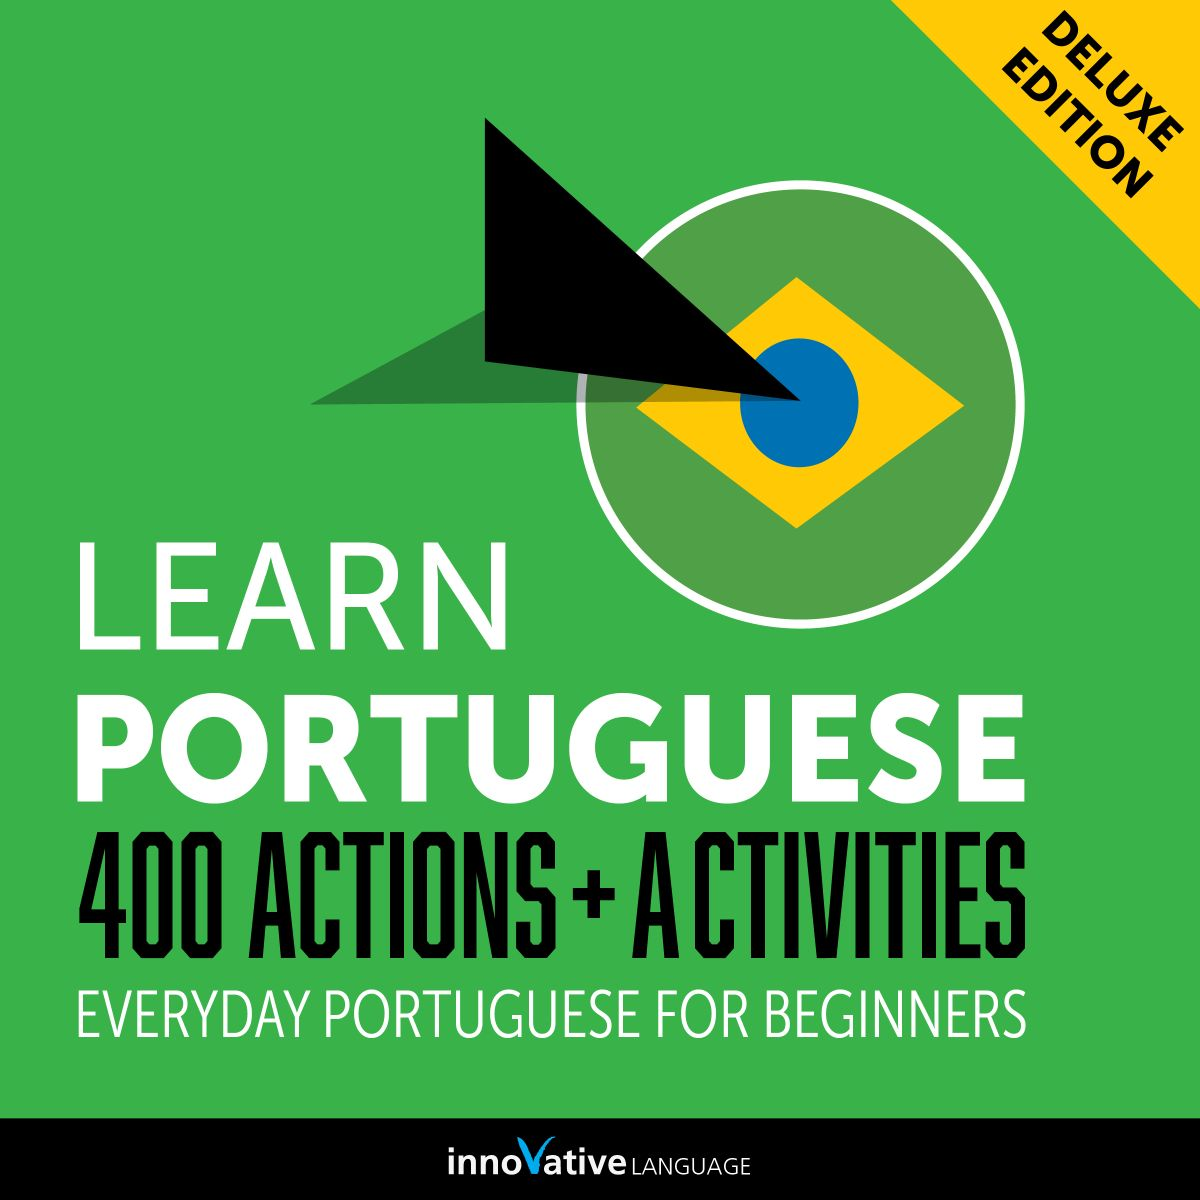 Learn Portuguese 400 Actions Activities